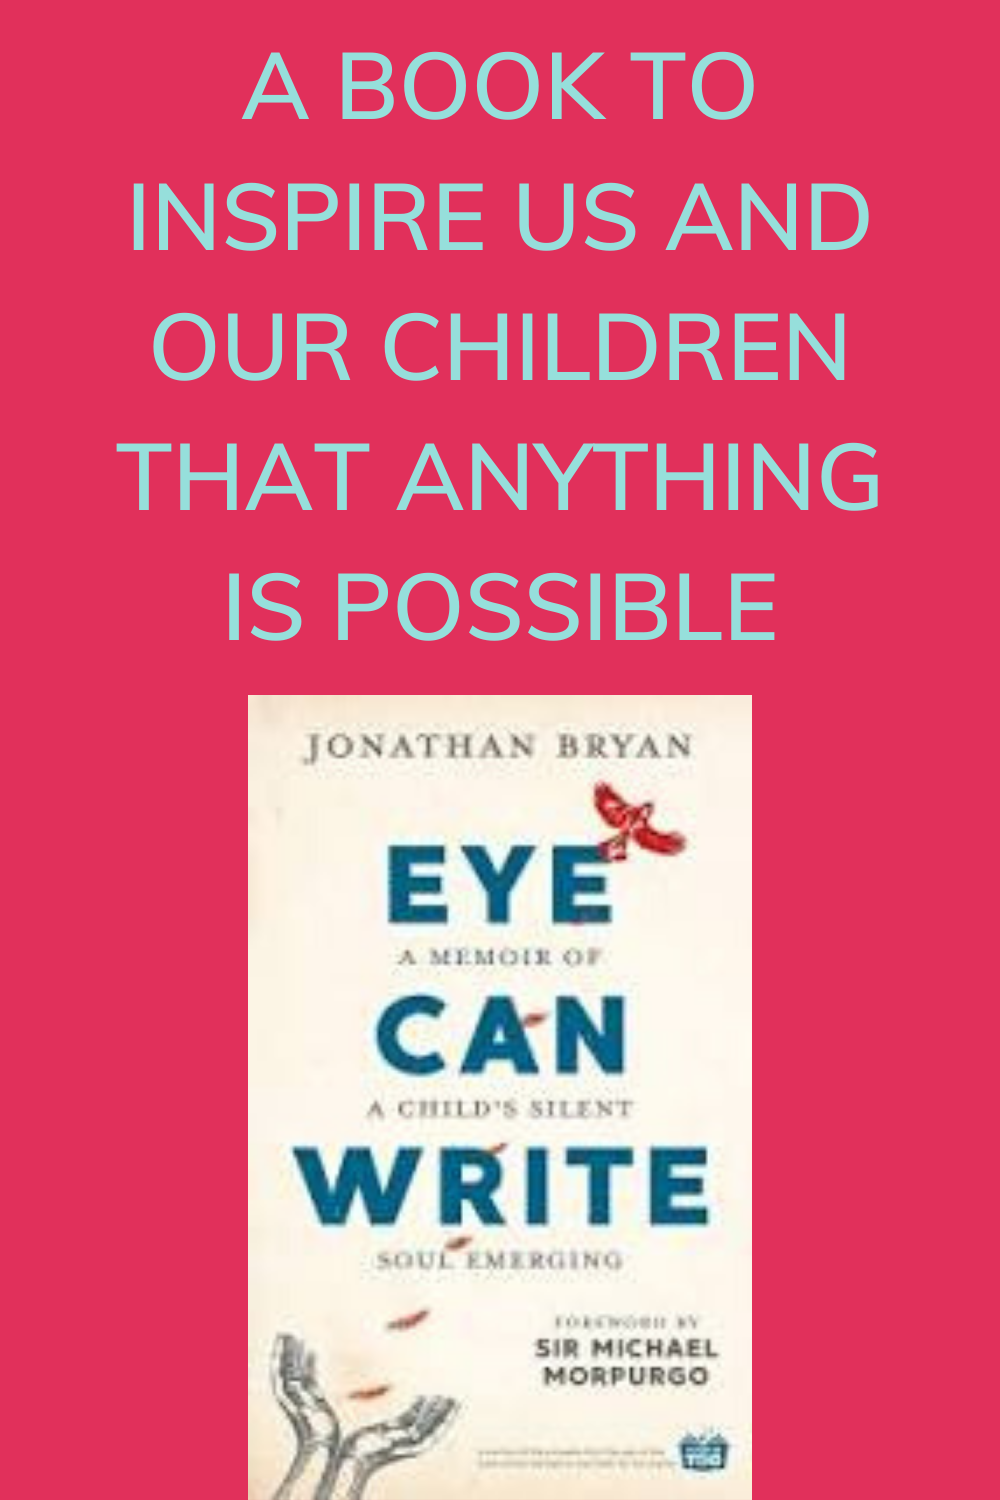 Eye Can Write, Jonathan Bryan, Chantal Bryan, foreword by Michael Morpurgo, review by The Hope-Filled Family, UK Christian parenting and adoption blog.